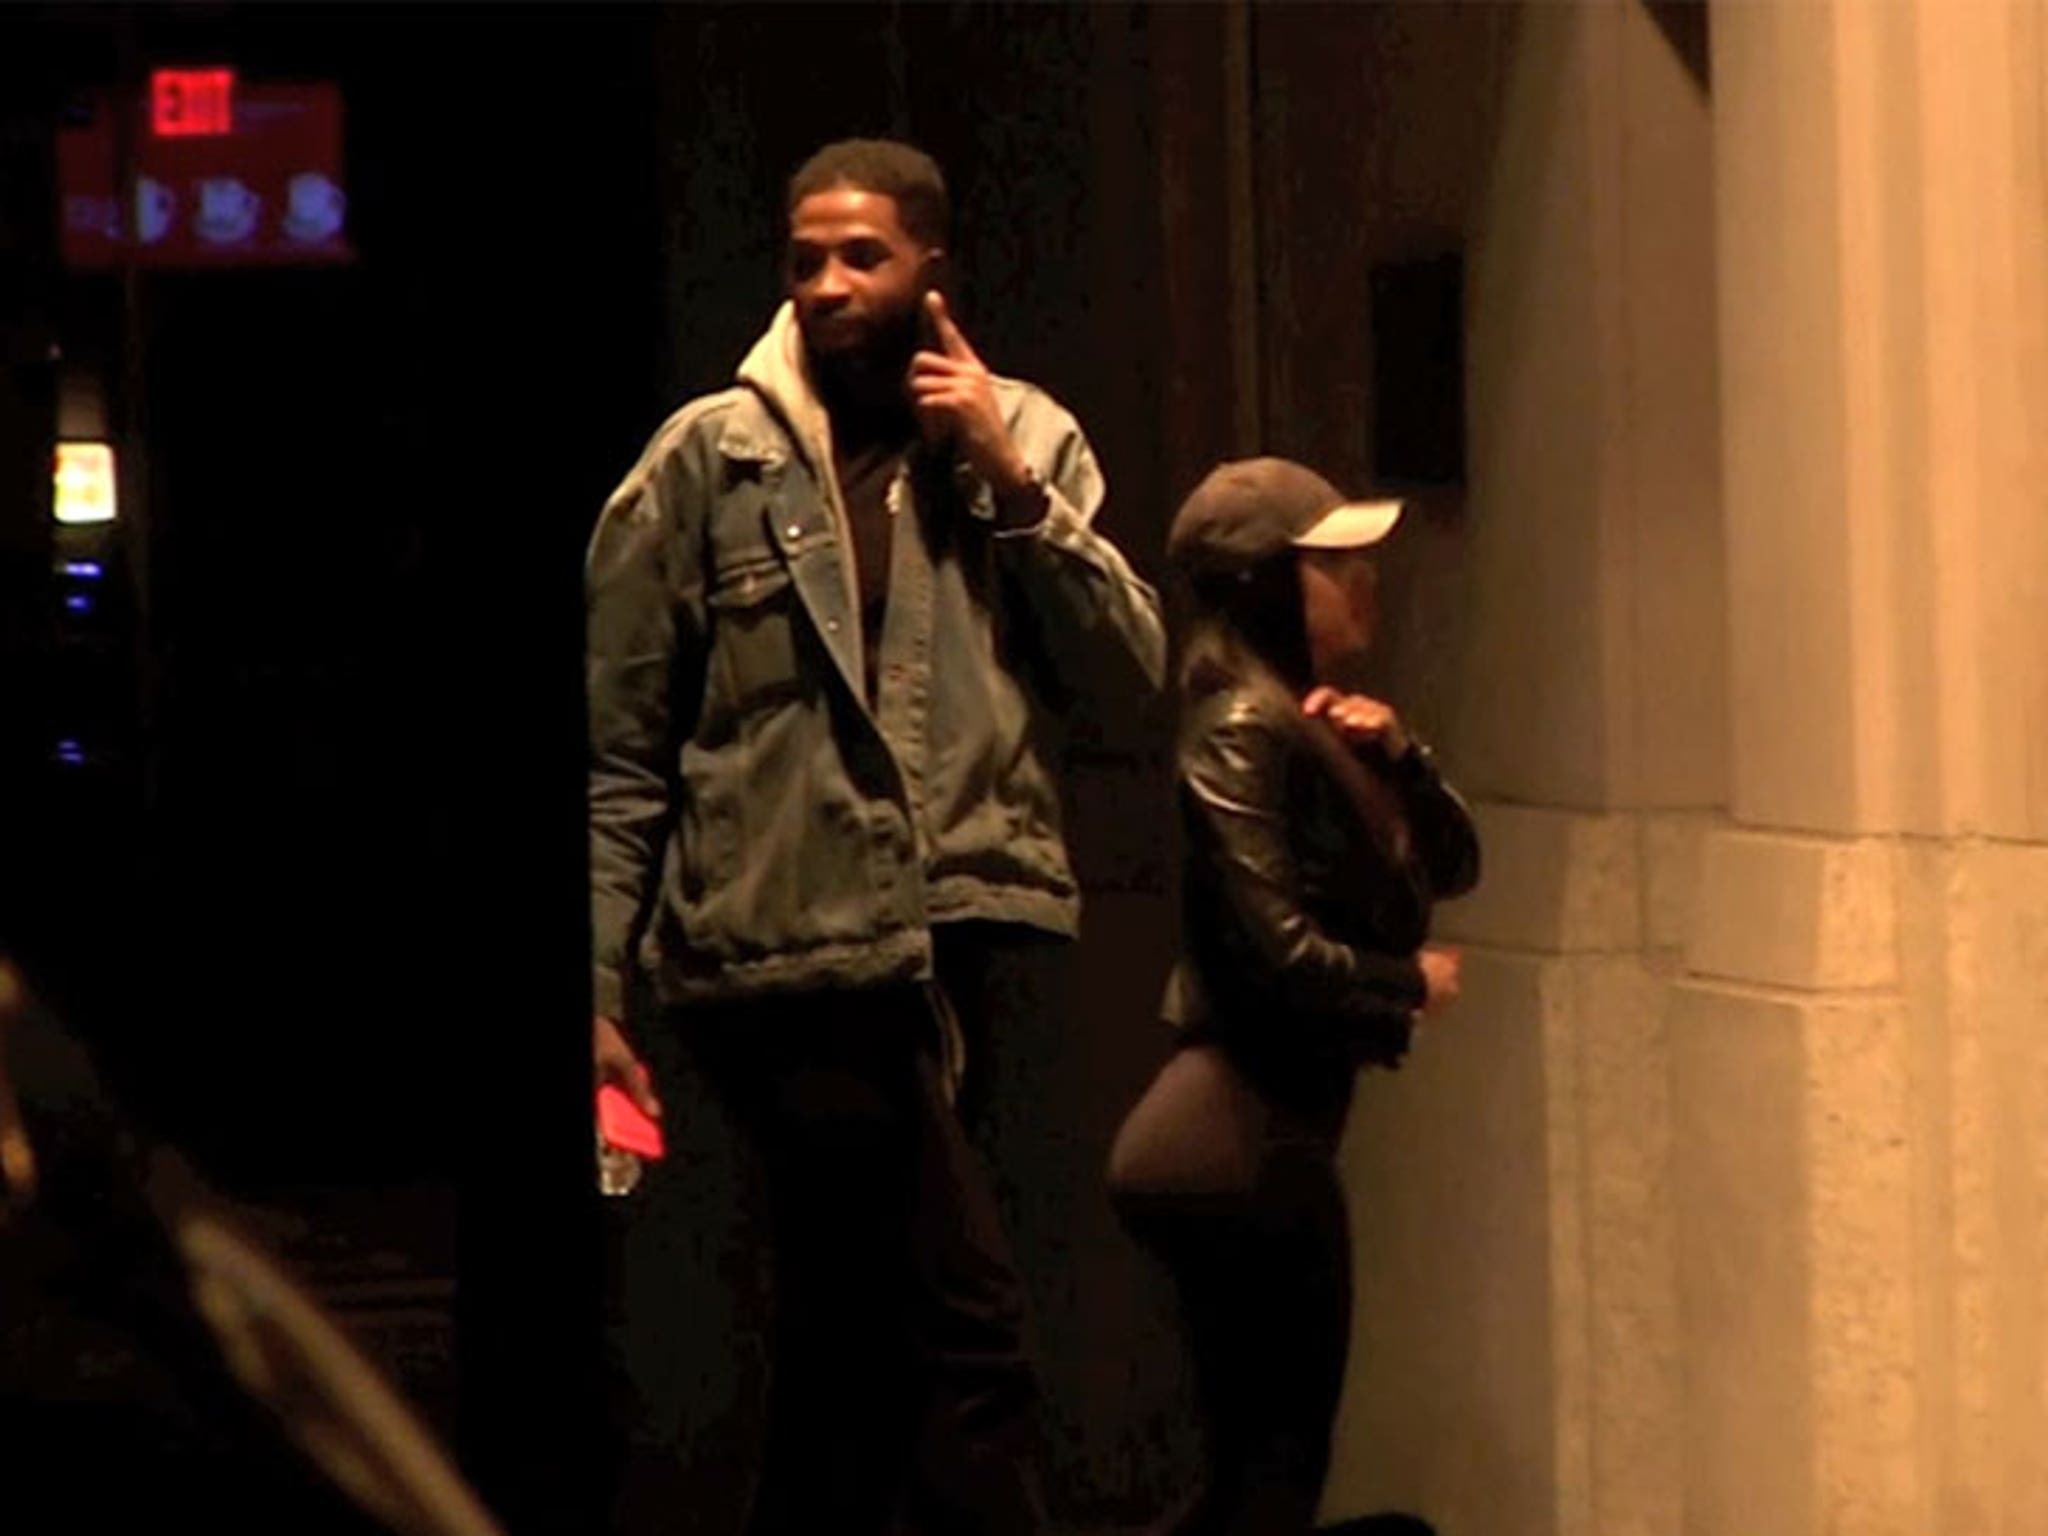 Tristan Thompson Went Back To Nyc Hotel With Woman From